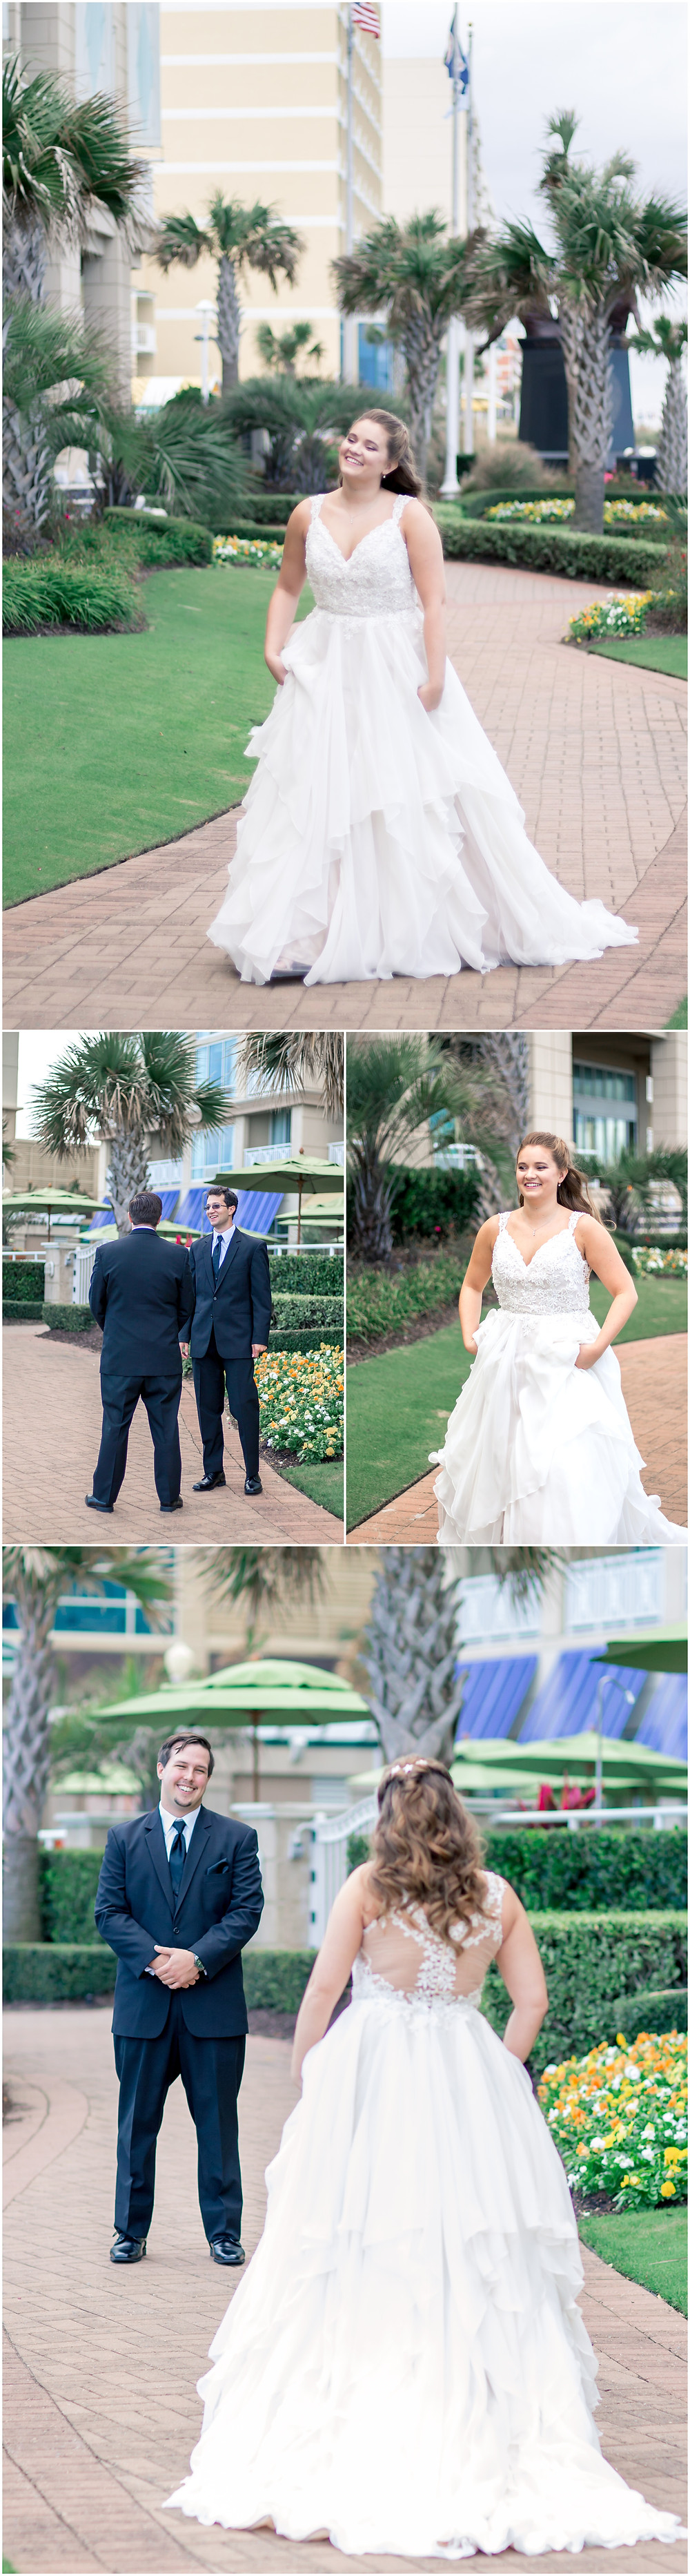 Bride and Groom have First Look outside wedding venue